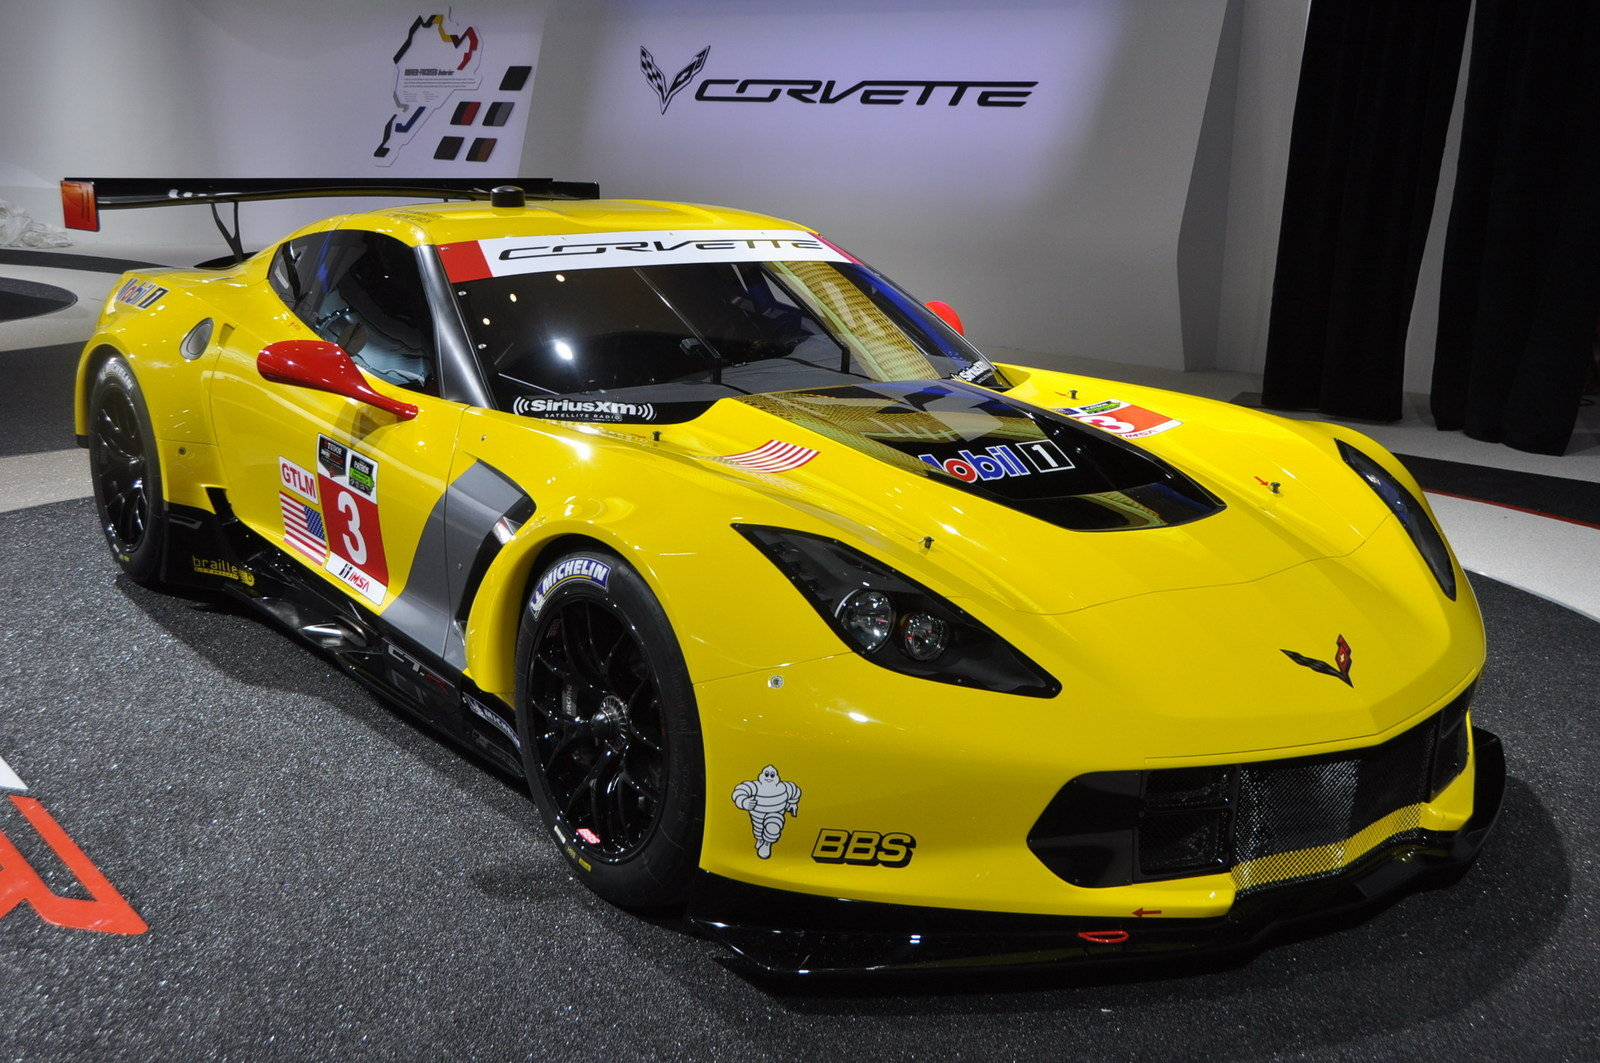 2014 chevrolet corvette c7 r picture 538445 car review top speed. Cars Review. Best American Auto & Cars Review